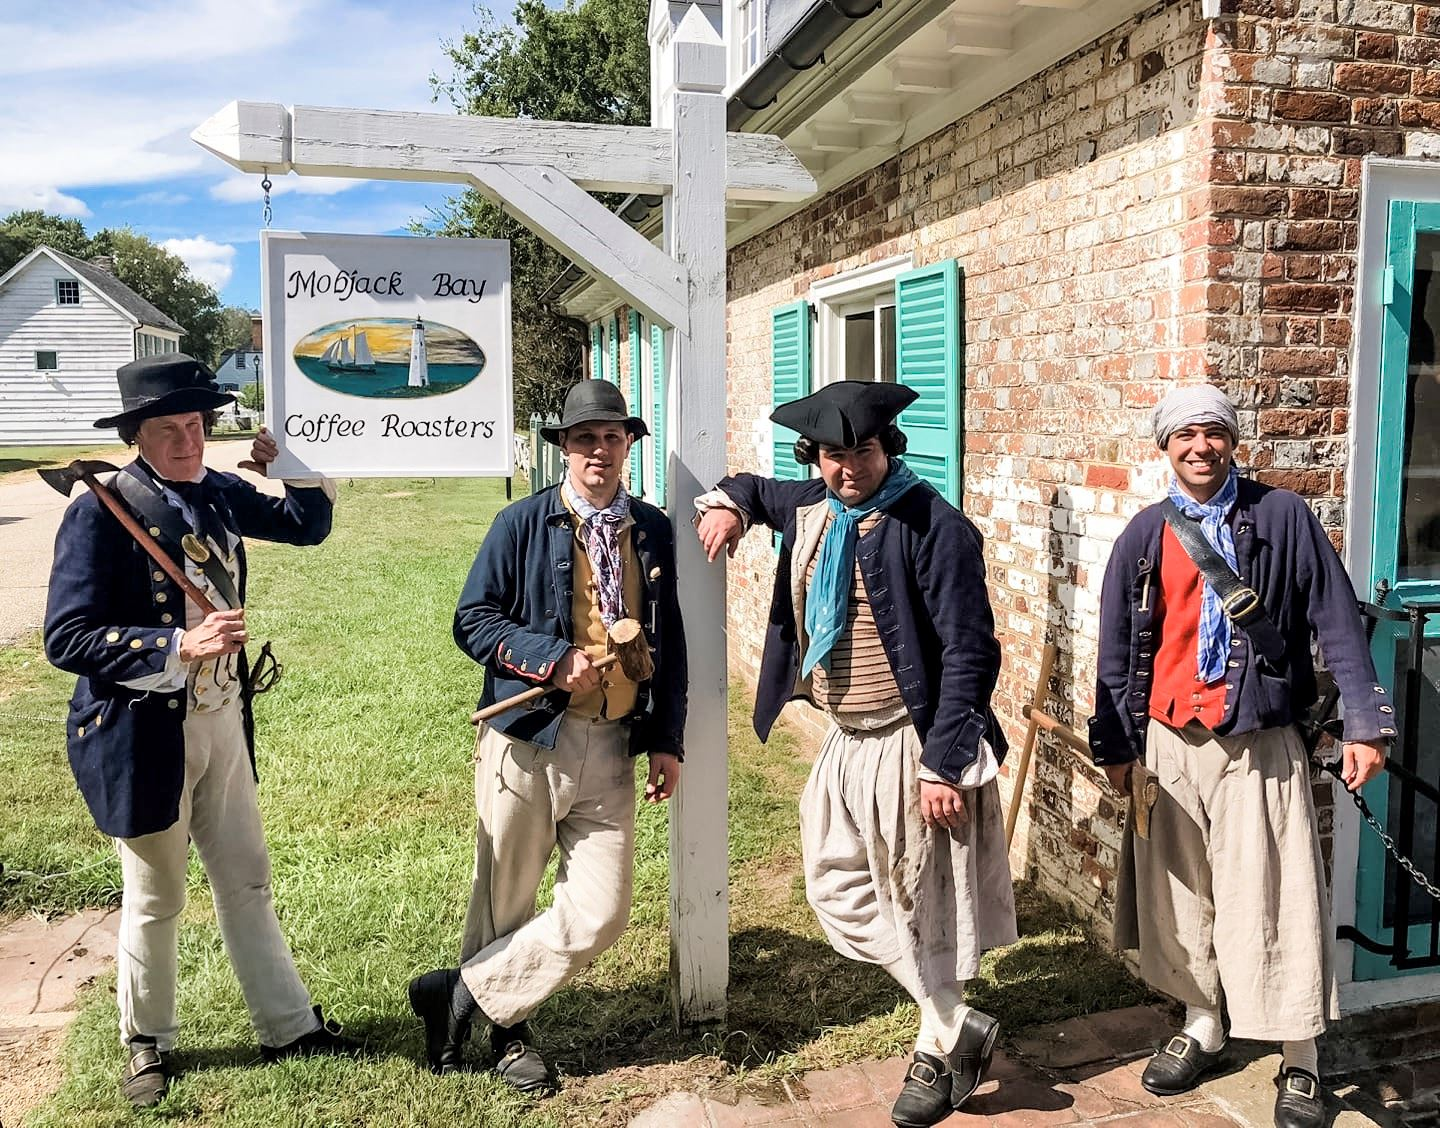 Reenactors posing outside Mobjack Bay Cofee Roasters